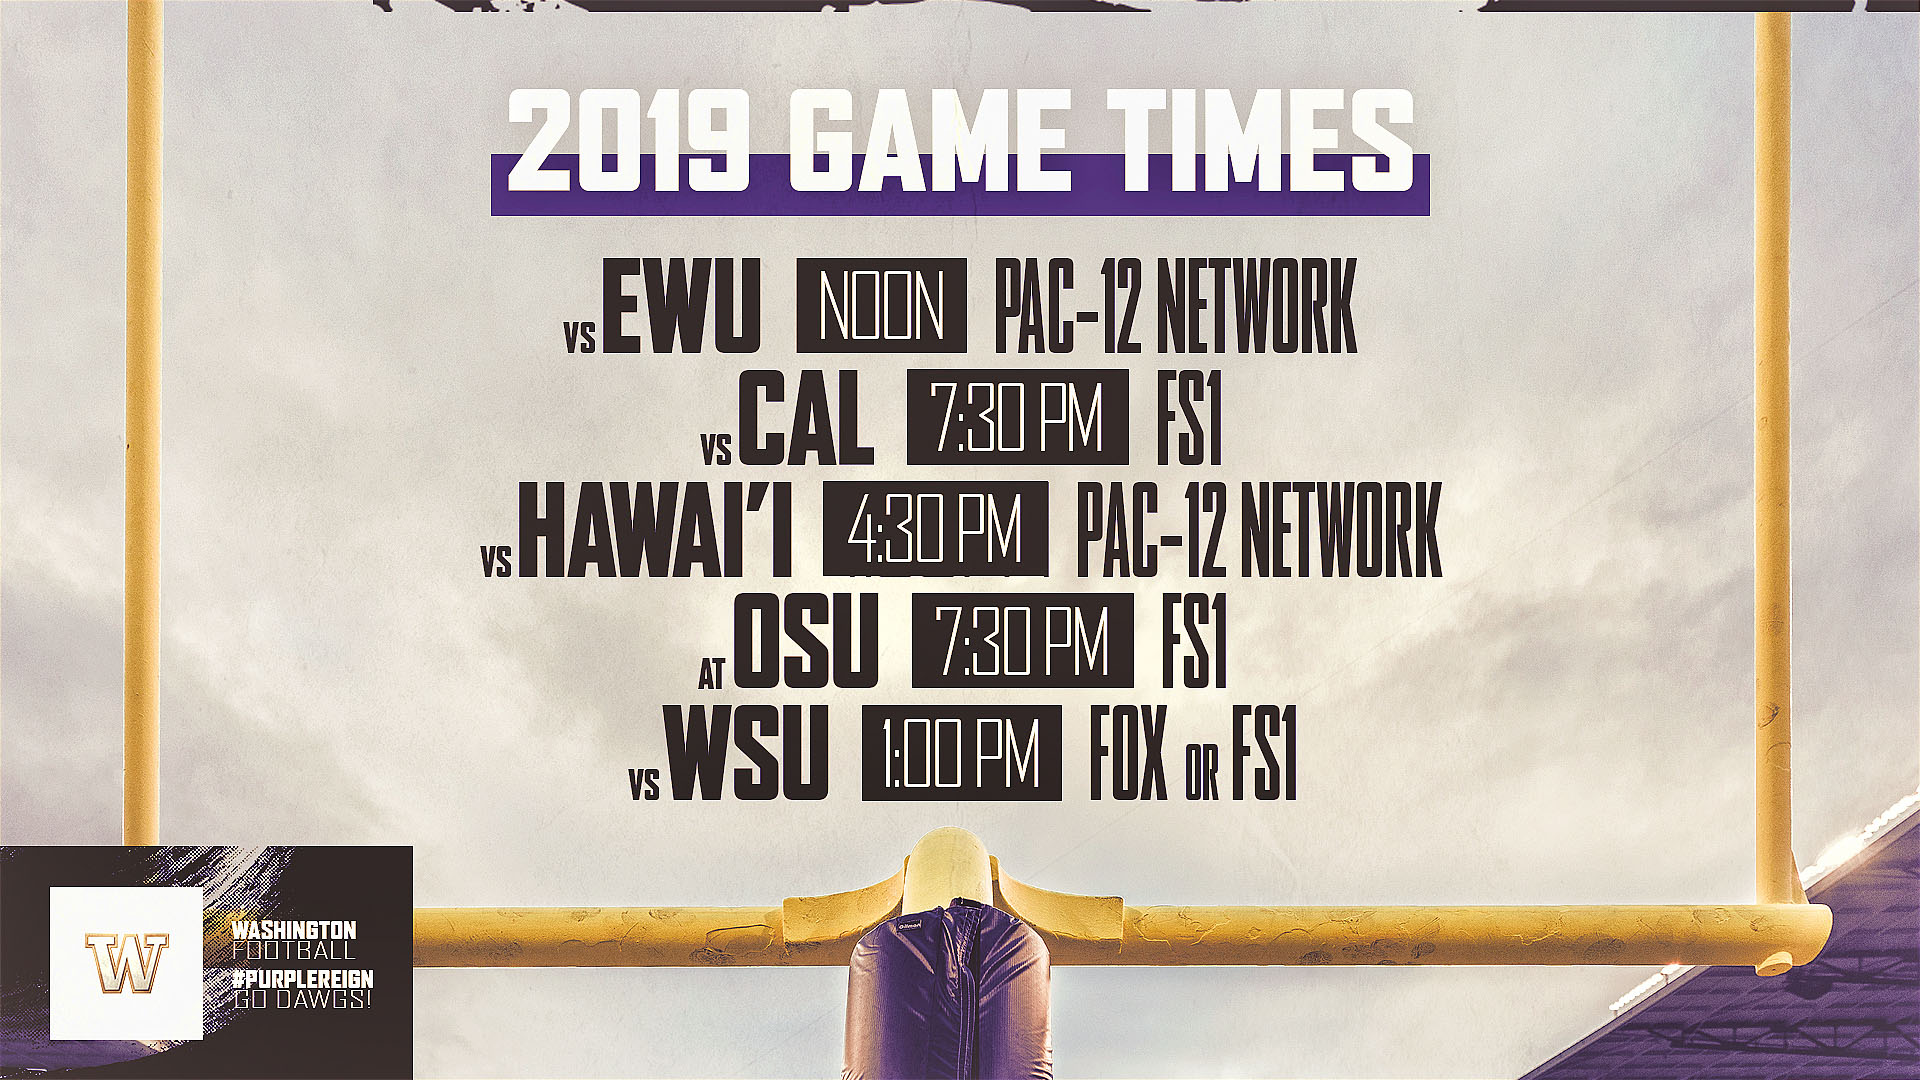 Huskies Football Schedule 2019 Times And TV Announced For Five UW Football Games   University of